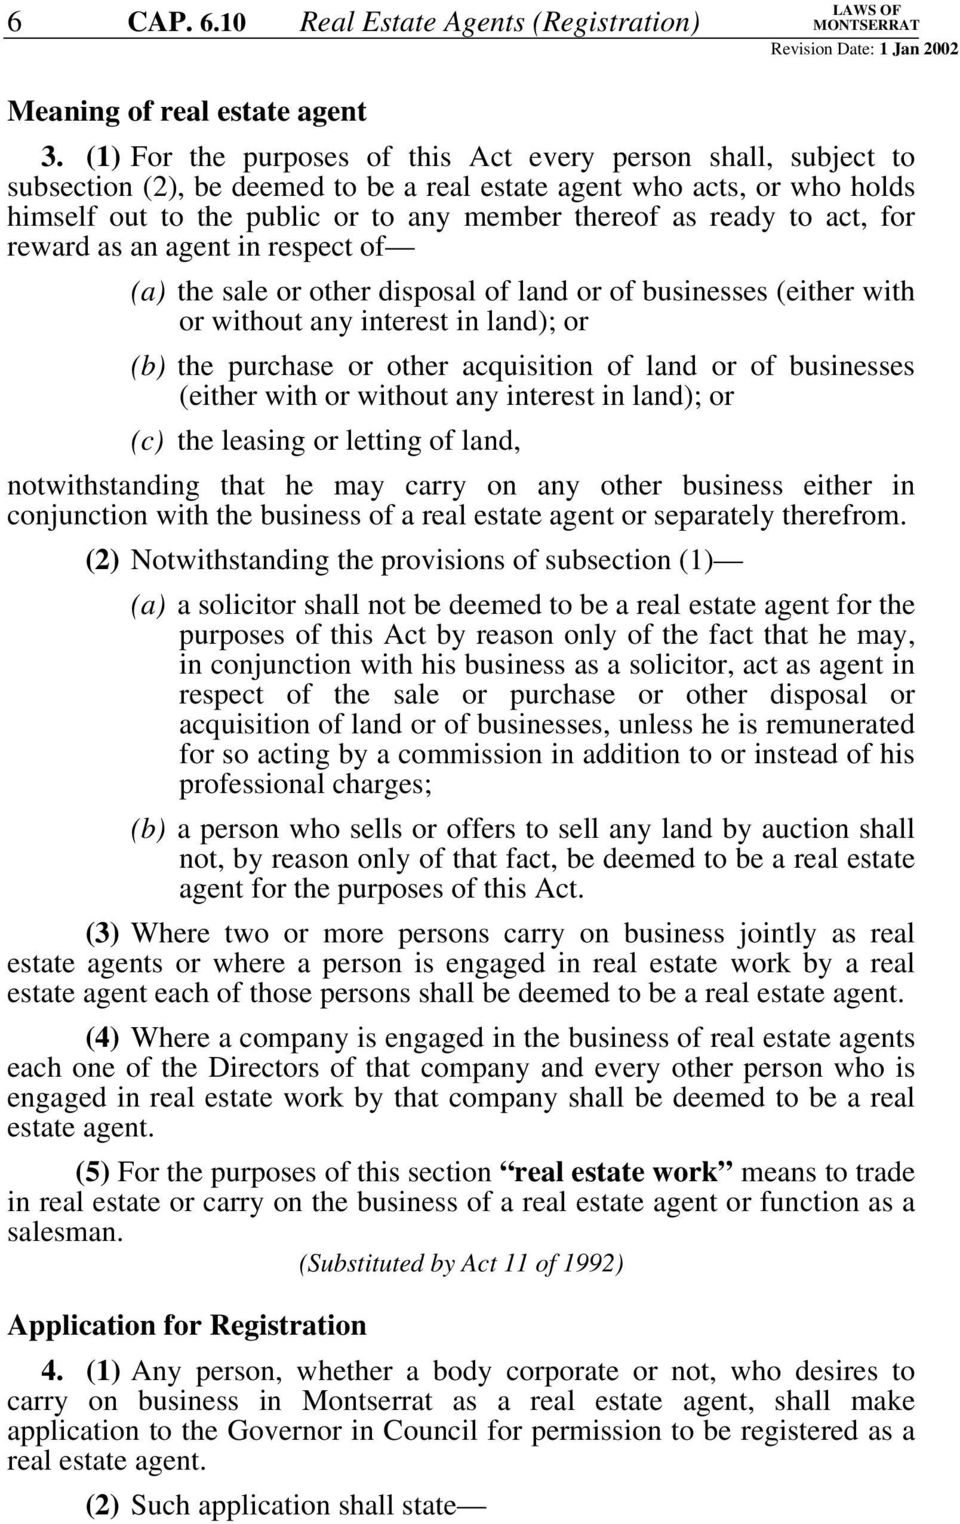 to act, for reward as an agent in respect of (a) the sale or other disposal of land or of businesses (either with or without any interest in land); or (b) the purchase or other acquisition of land or